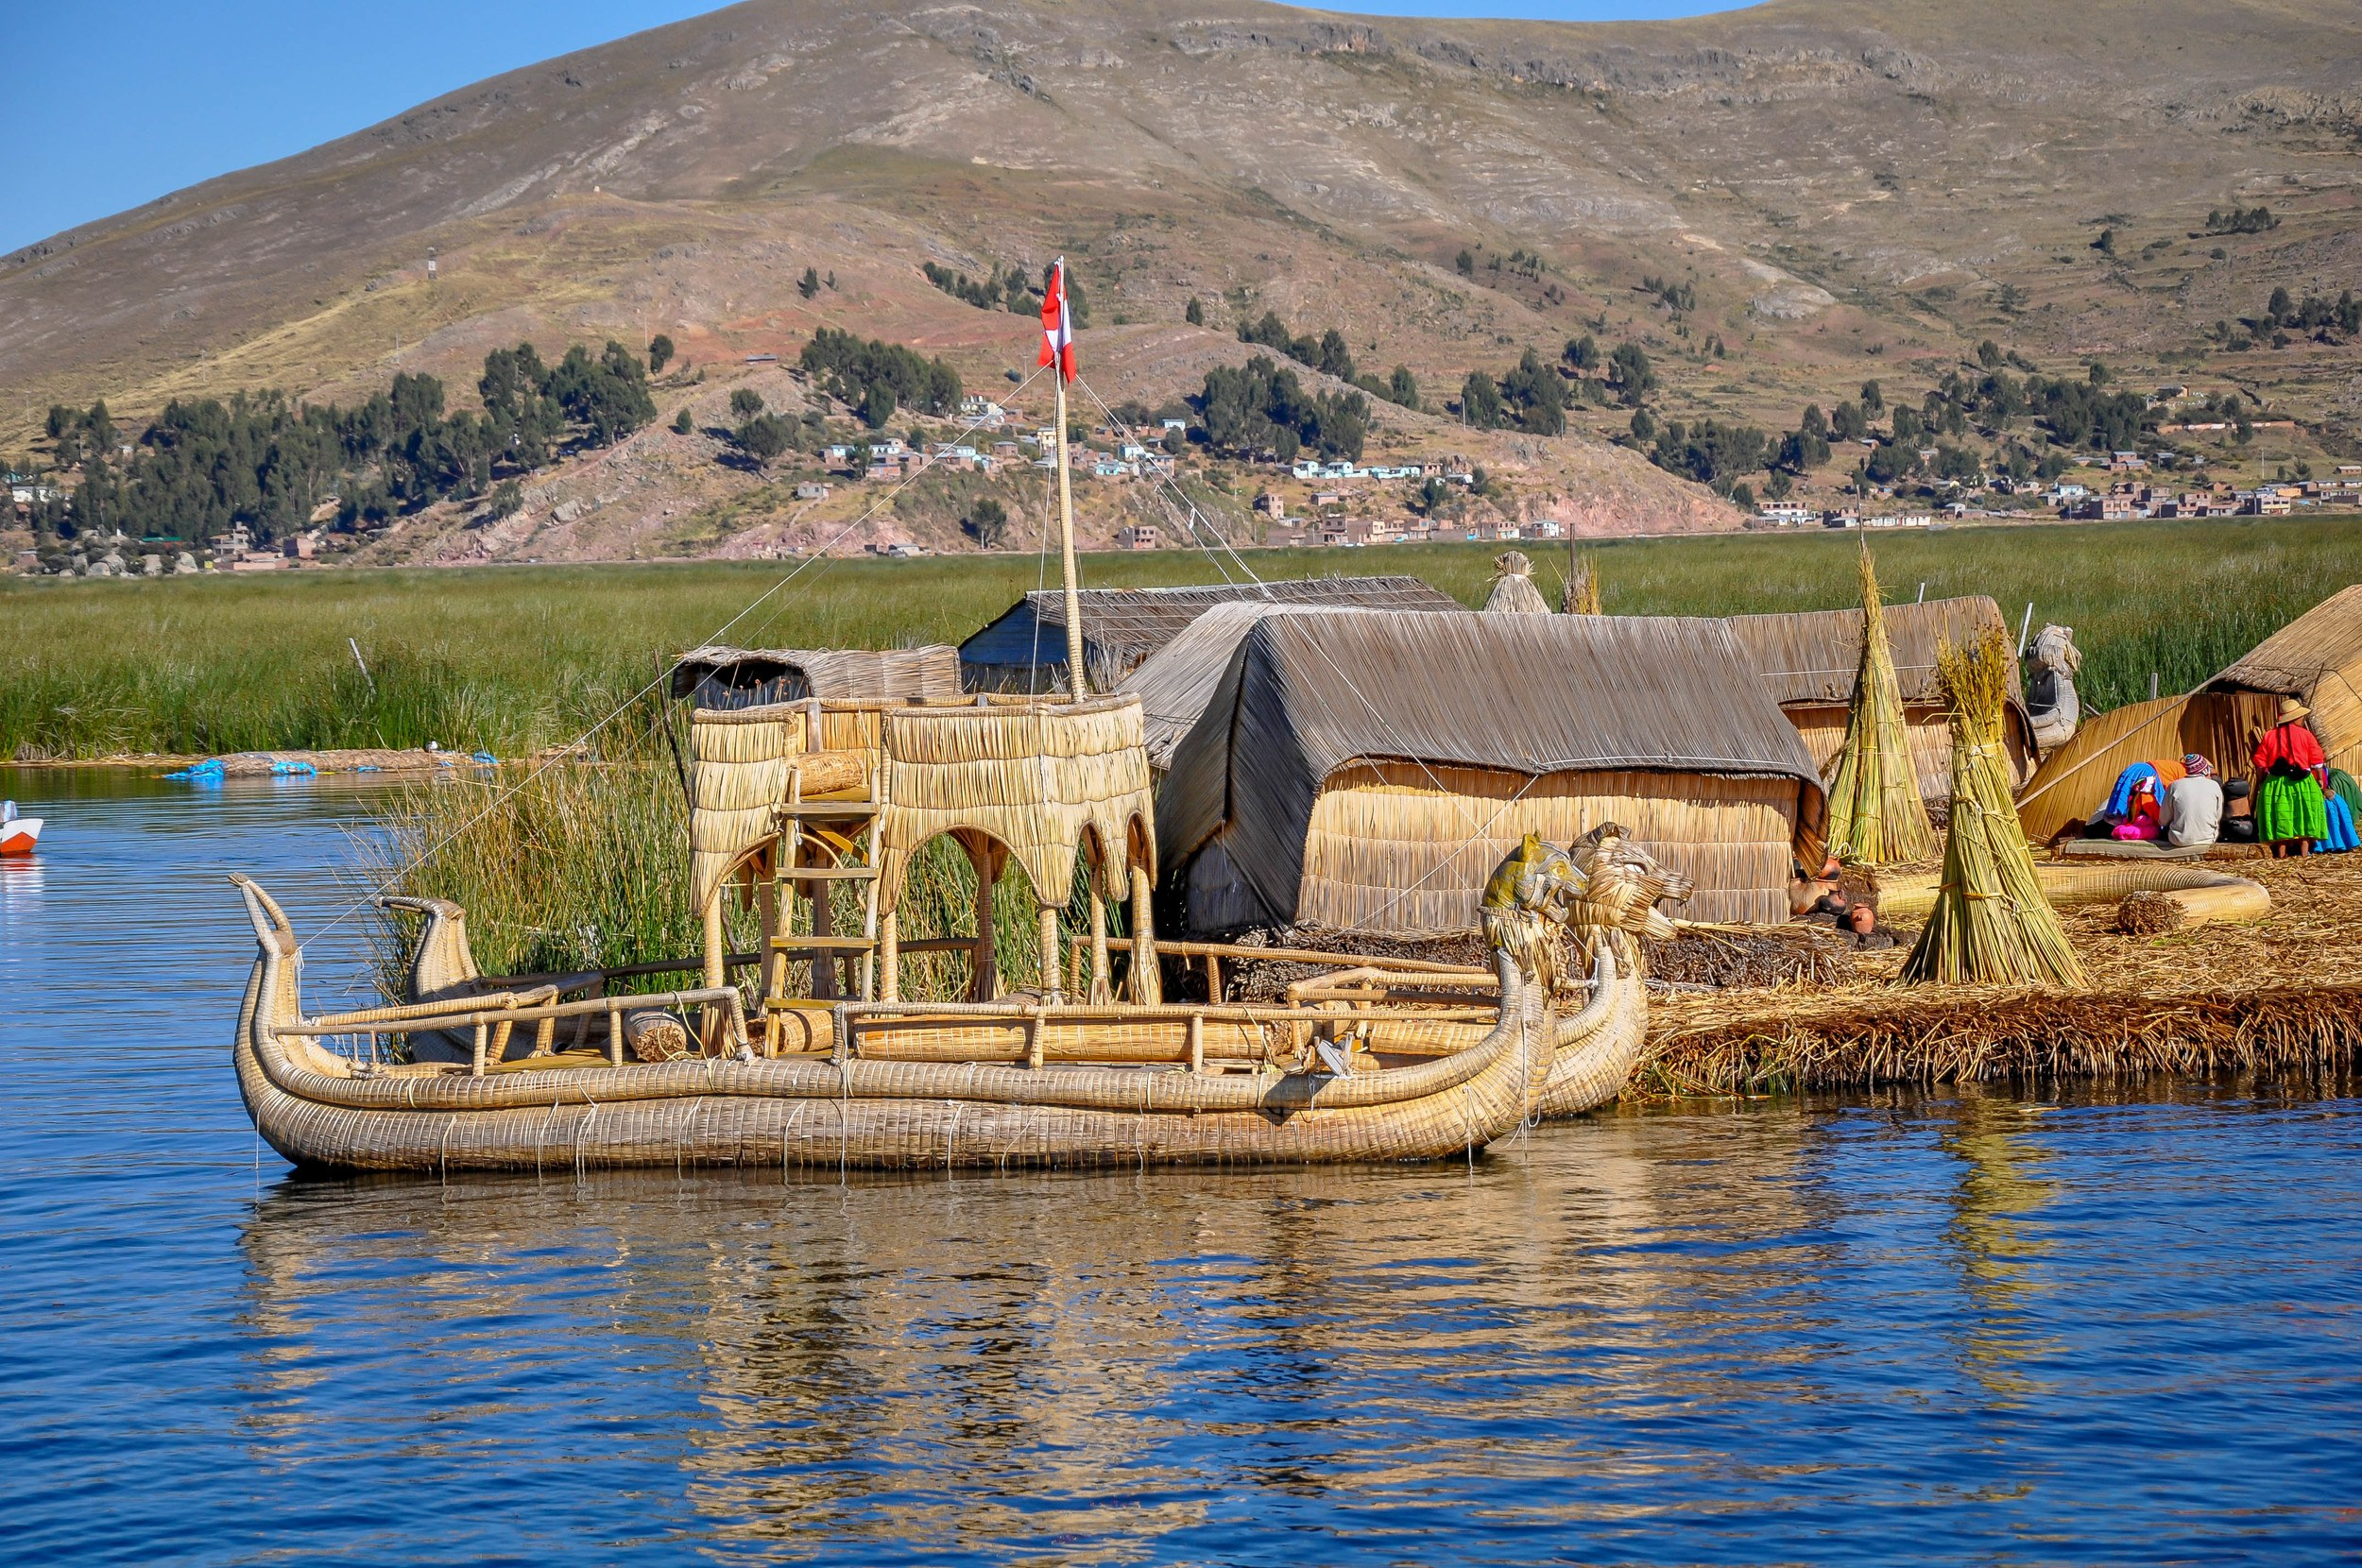 Reed boats and the manmade Uros Islands made of reeds floating in Lake Titicaca